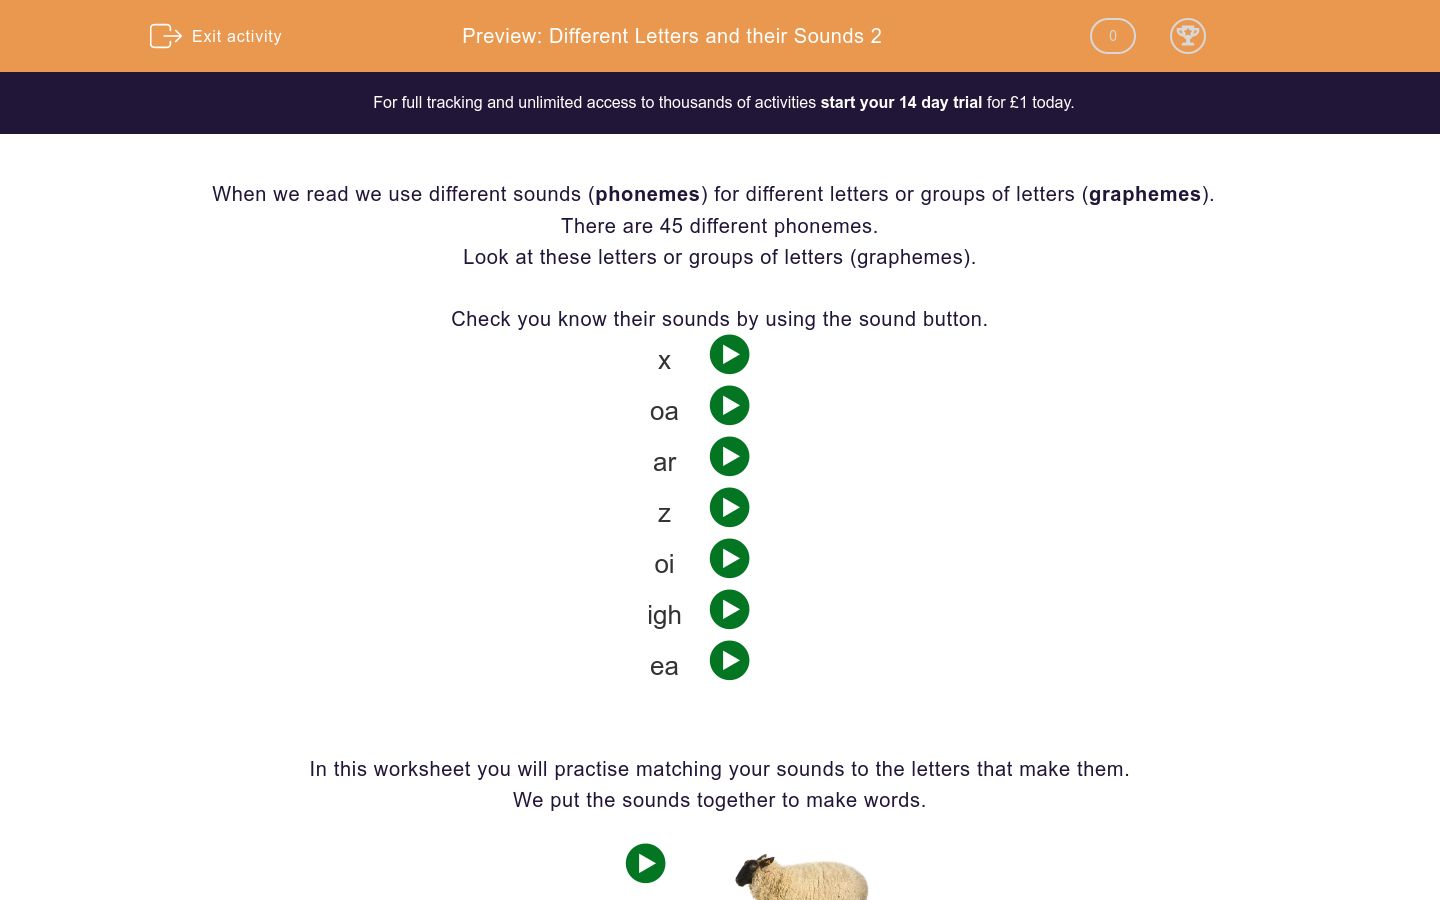 'Different Letters and their Sounds 2' worksheet